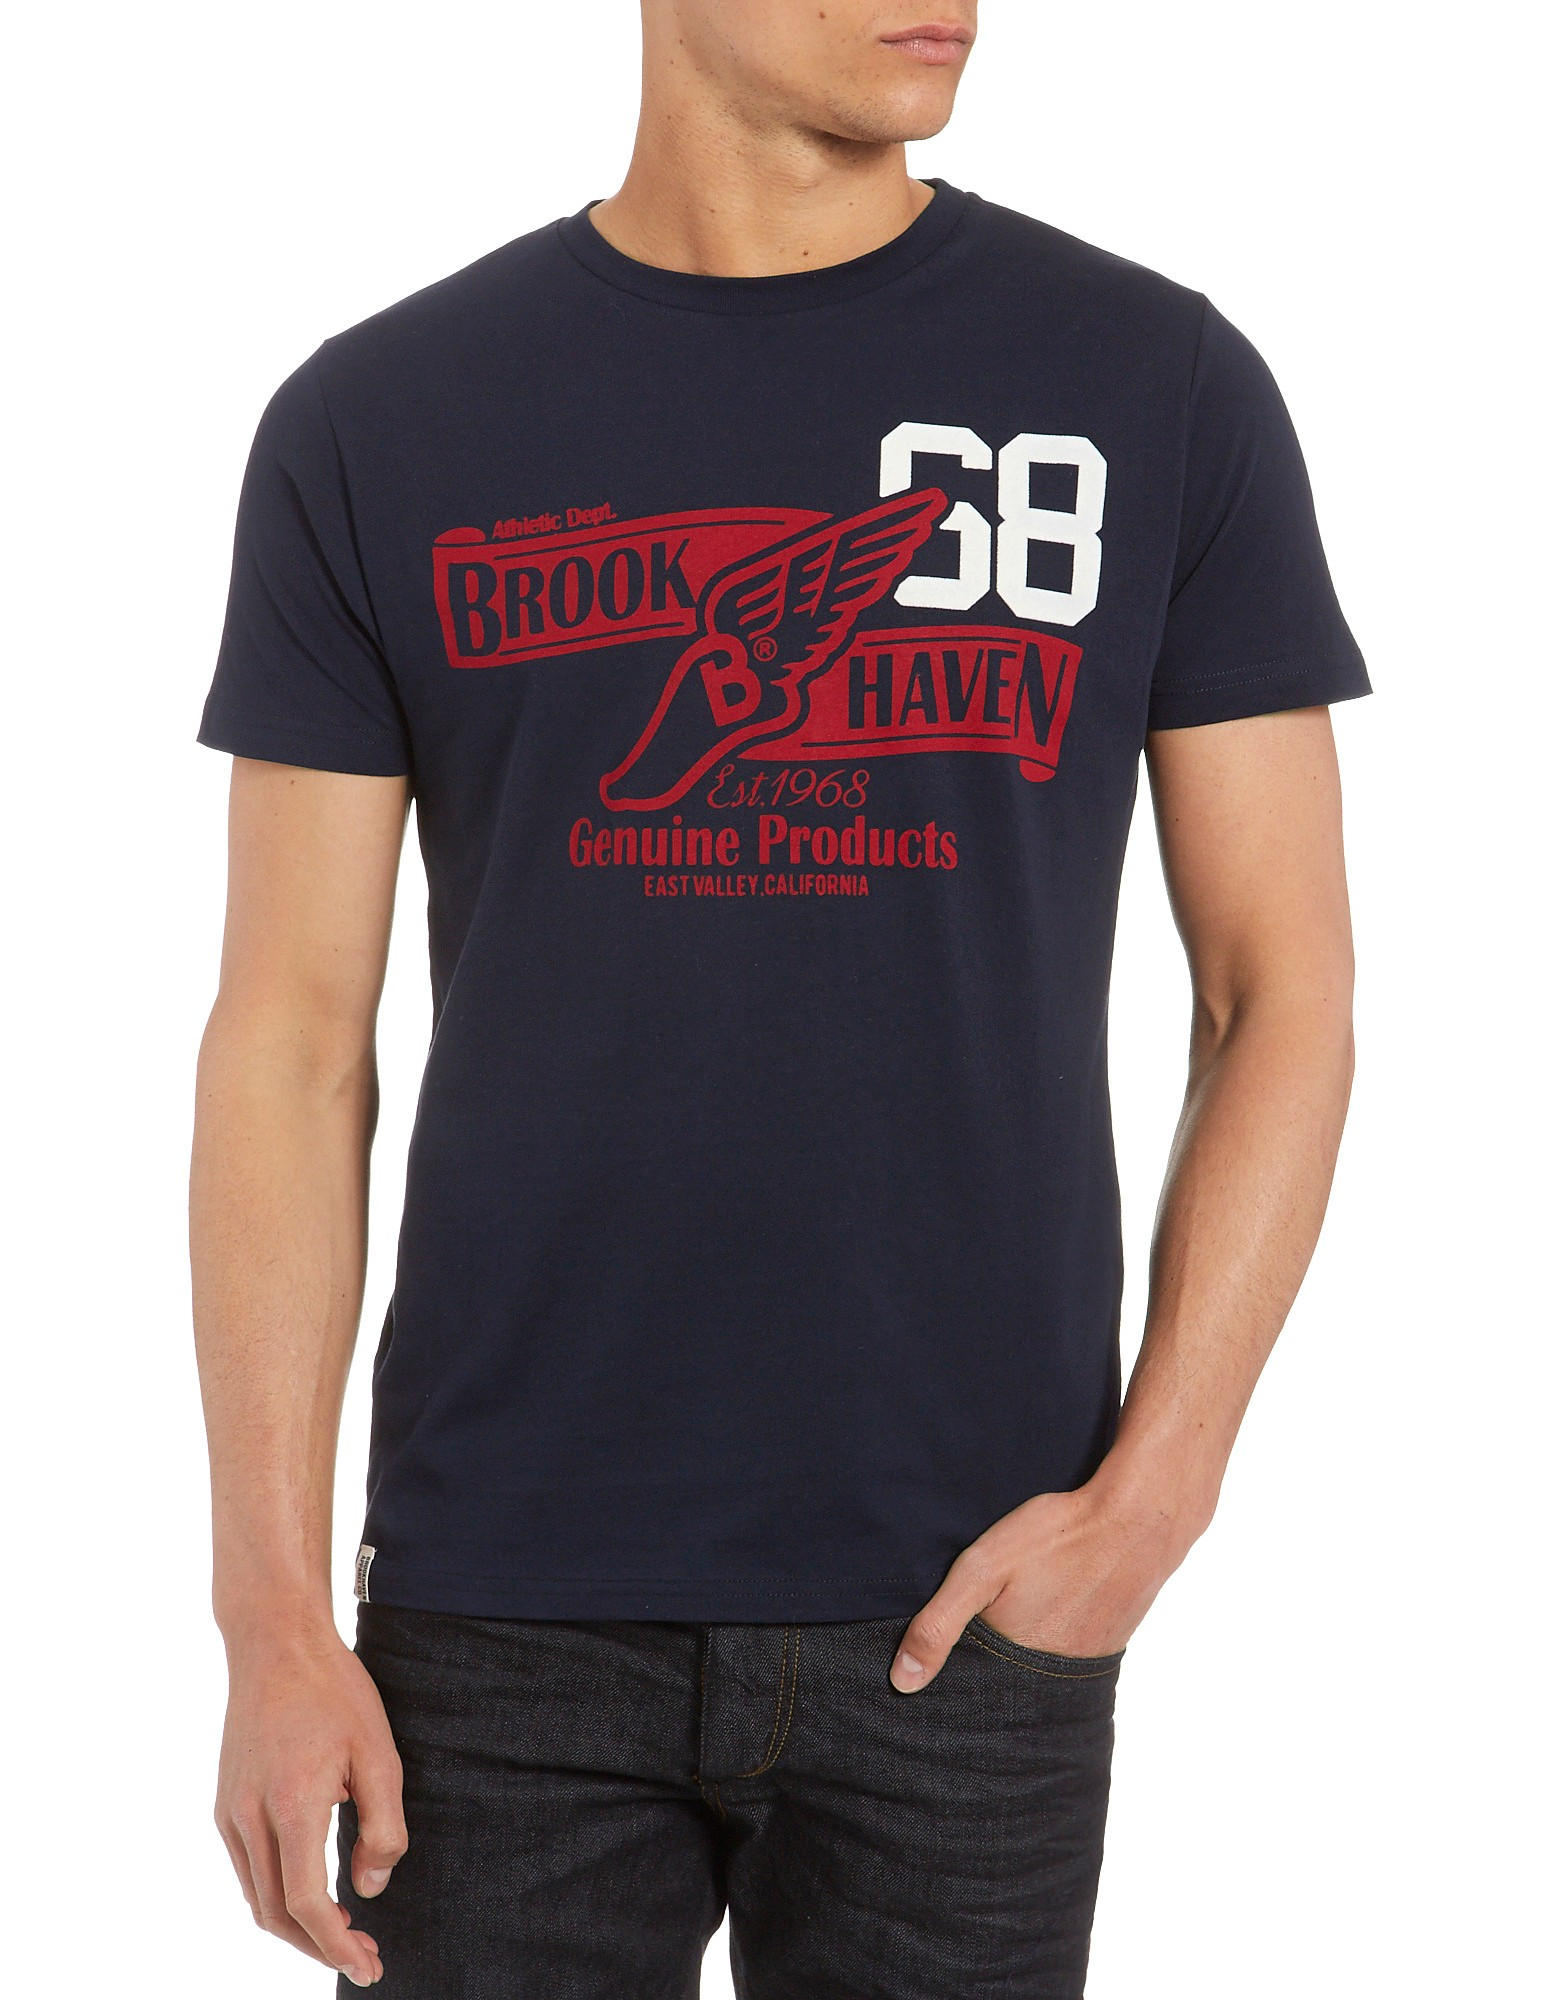 Brookhaven Paine T-Shirt product image